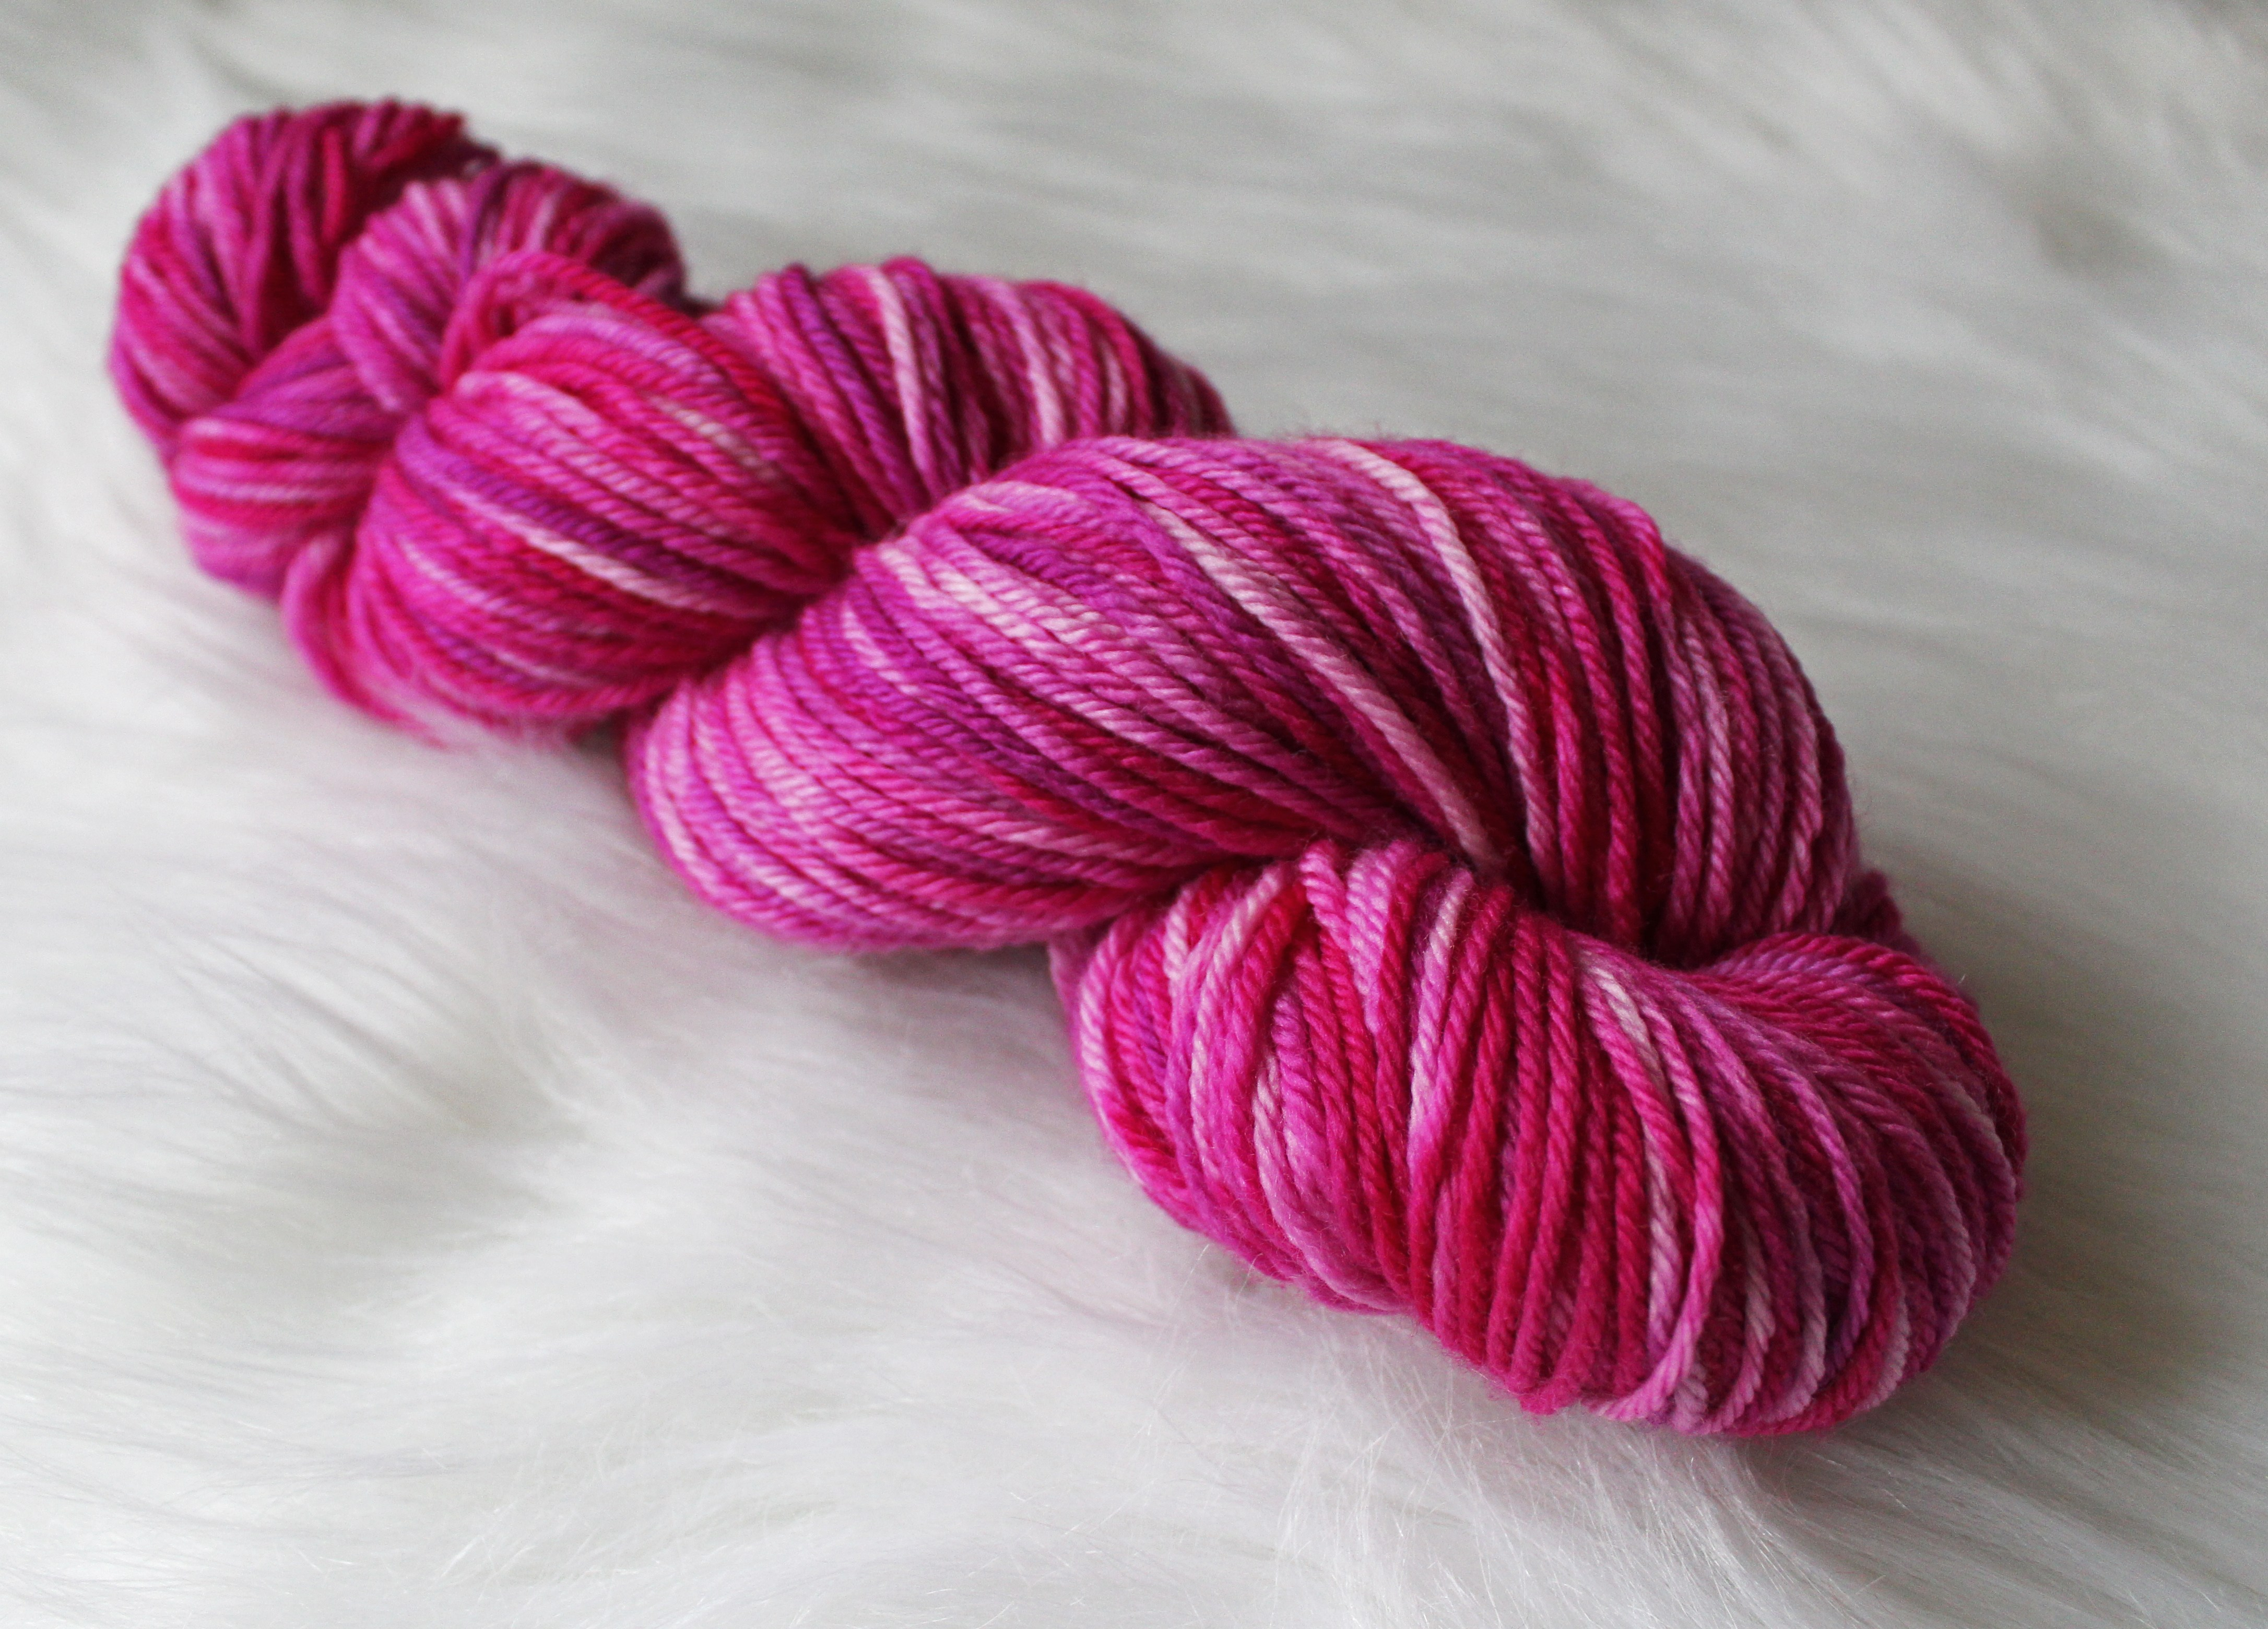 recommended dyers - Roses, a colorway of Springtime in Paris (image ©Unicorn Yarn Co.)